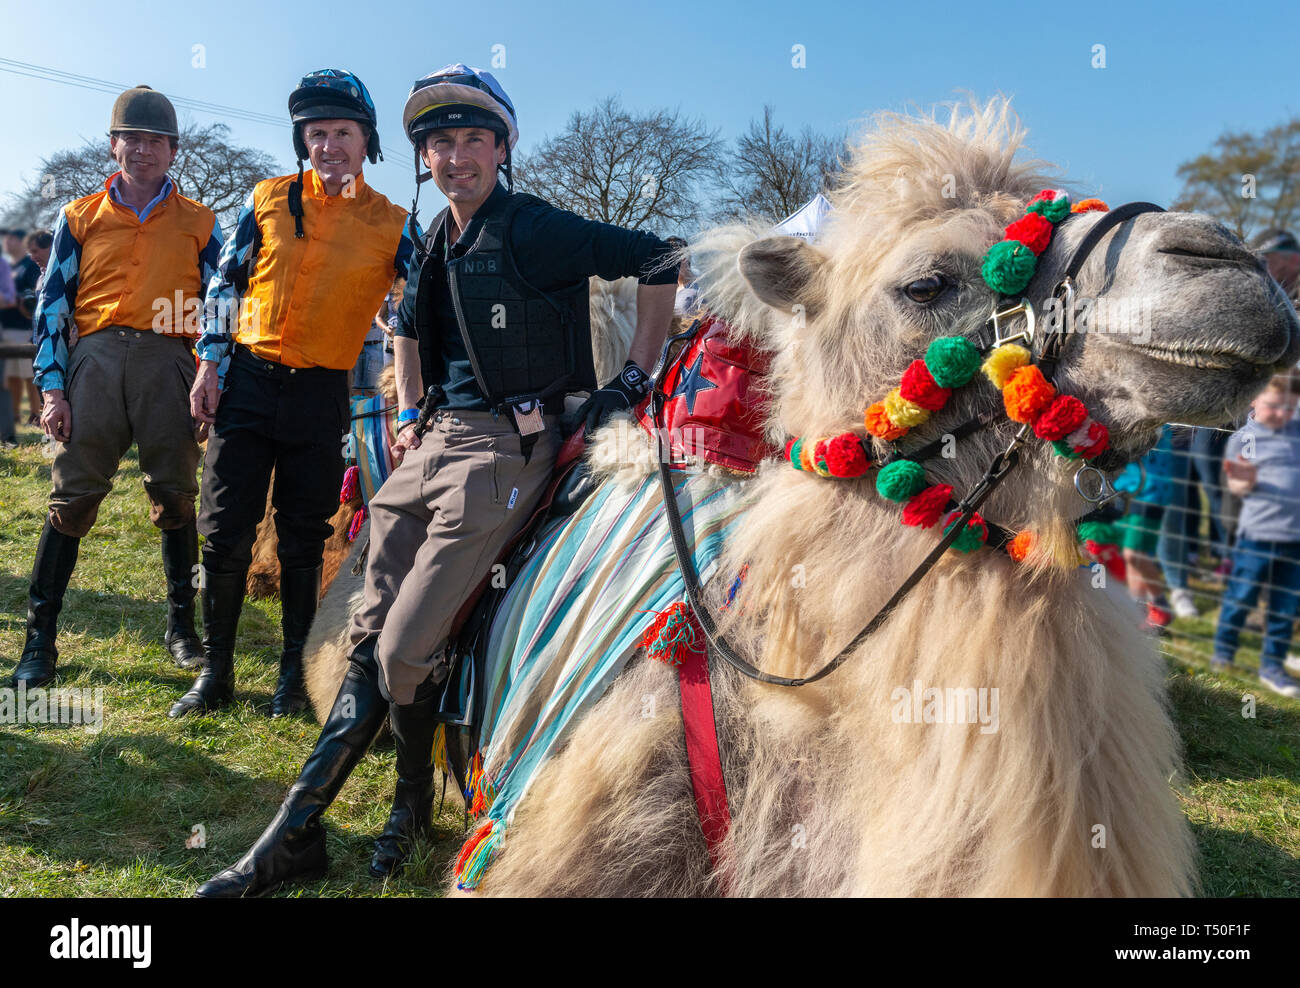 Hungerford, West Berkshire, UK. 19th Apr 2019. Melbourne 10 Racing Camel Racing winners AP McCoy (Sir Anthony Peter McCoy OBE, commonly known as AP McCoy ) former champion horse racing jockey Centre 1ST famous horse race trainer Jamie Osborne Left 2ND and Nico de Boinville racing jockey who competes in National Hunt racing. Stock Photo